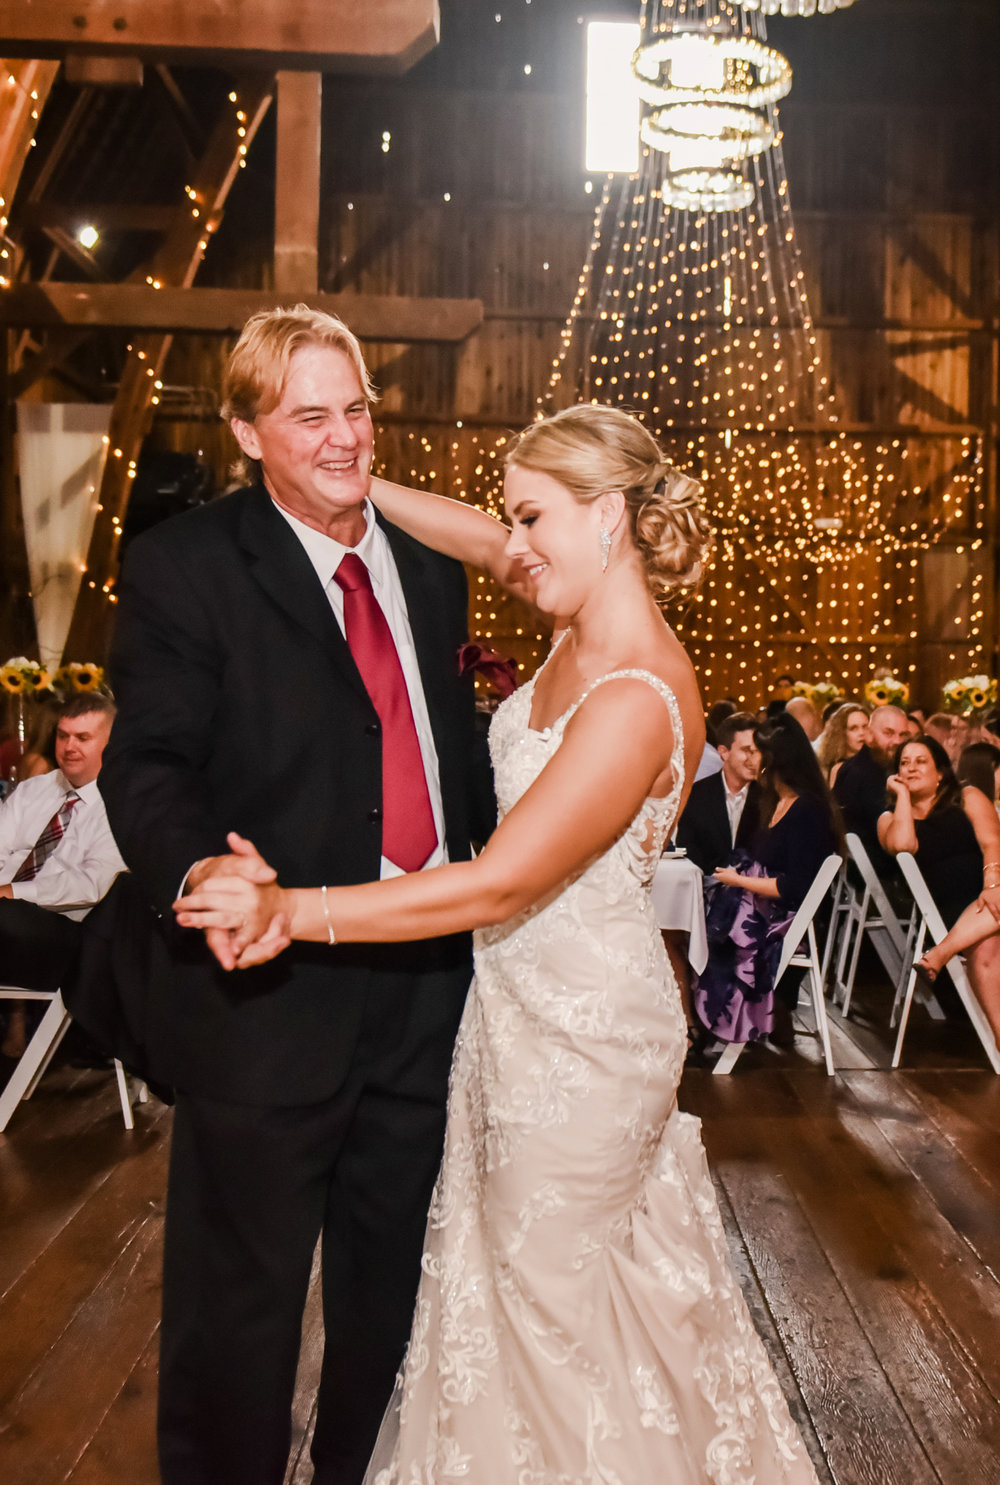 Cobblestone_Wedding_Barn_Rochester_Wedding_JILL_STUDIO_Rochester_NY_Photographer_DSC_7797.jpg